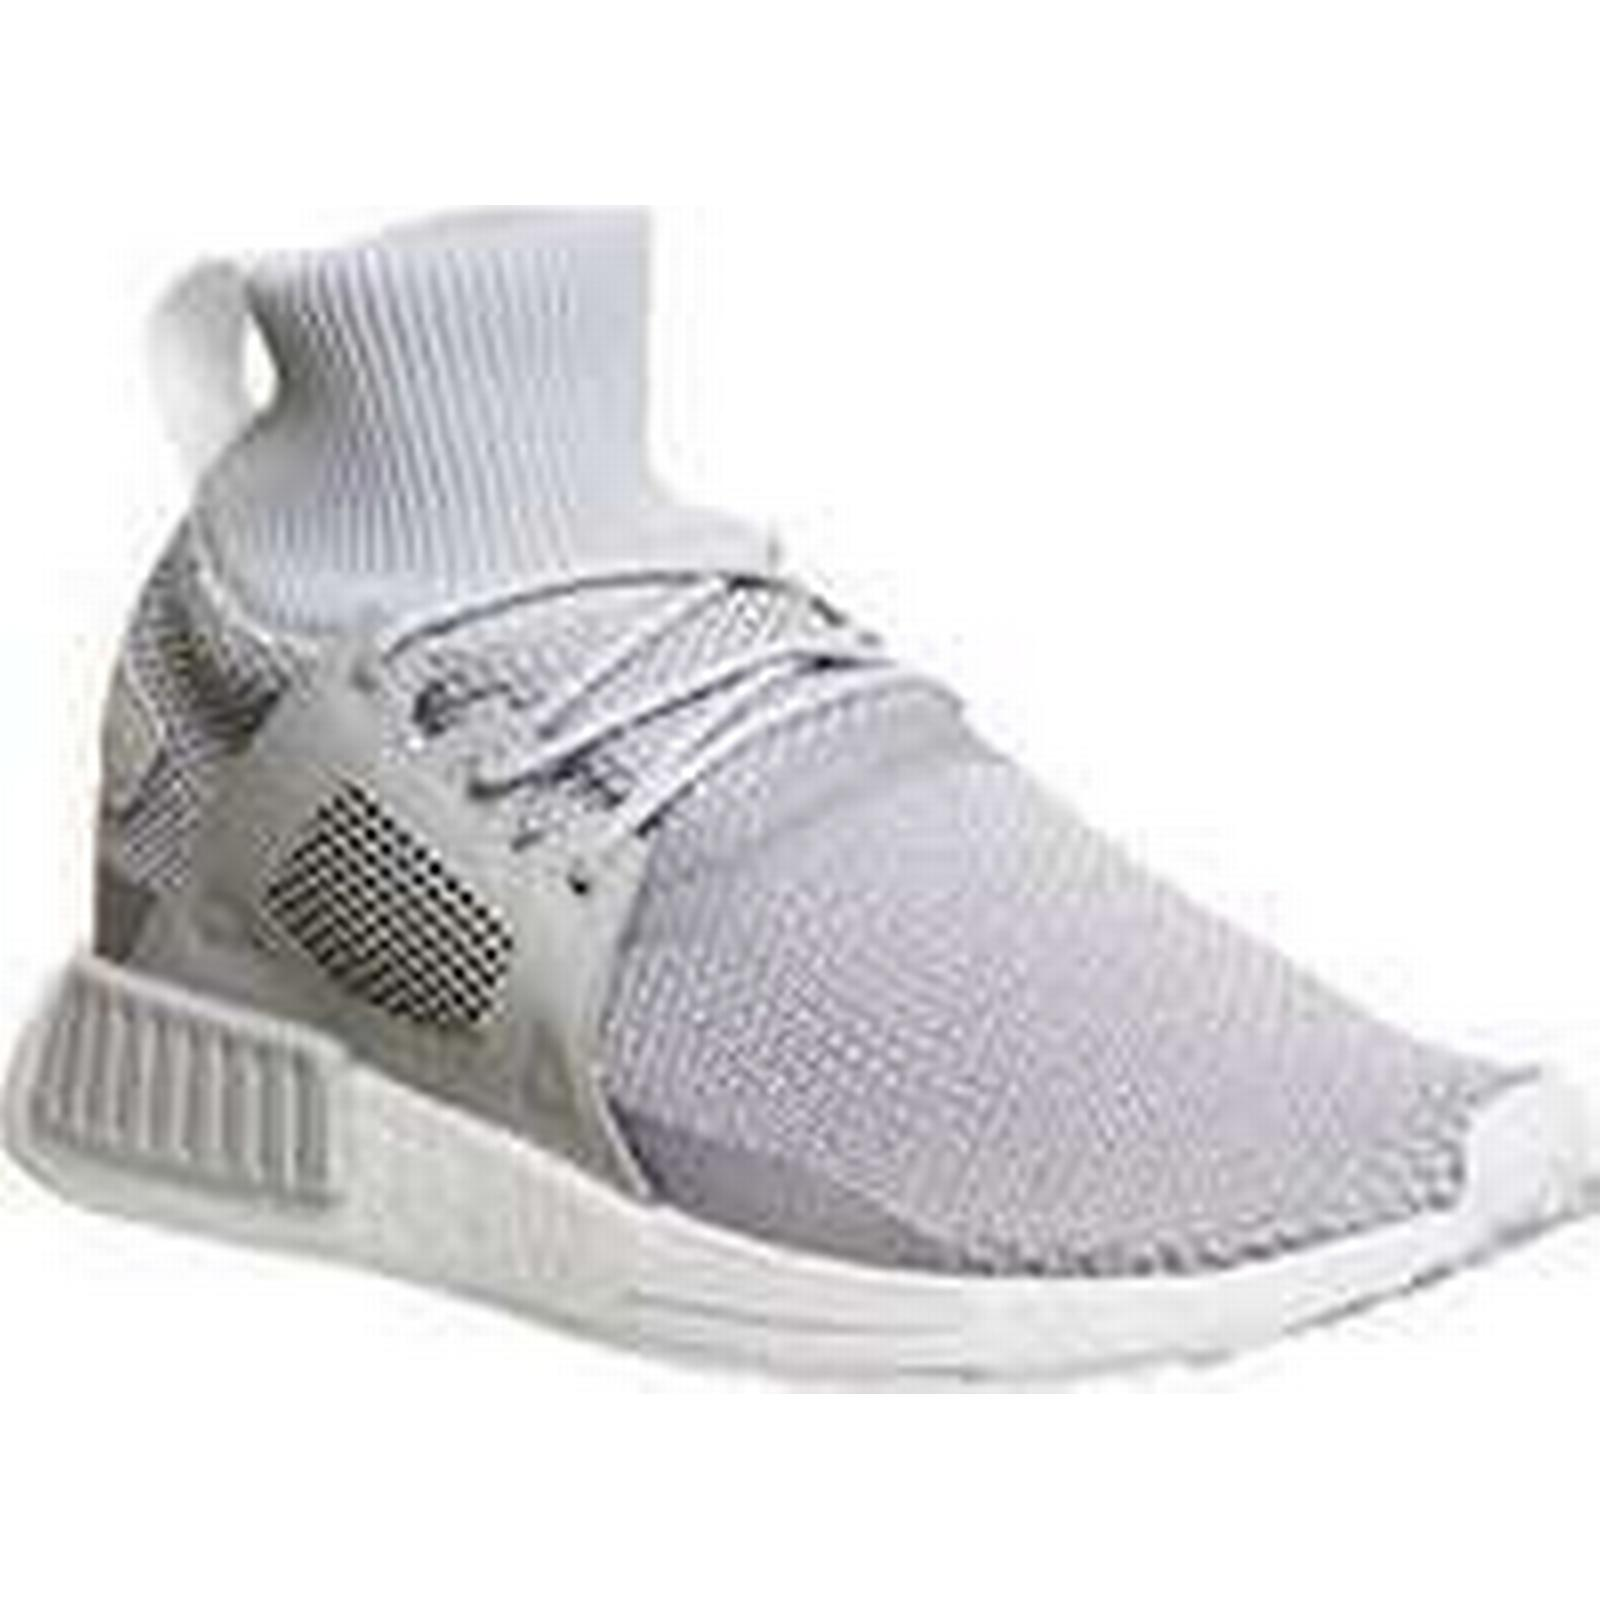 Adidas Nmd Winter Zr1 Winter Nmd GREY TWO WHITE,Grey 3e9845